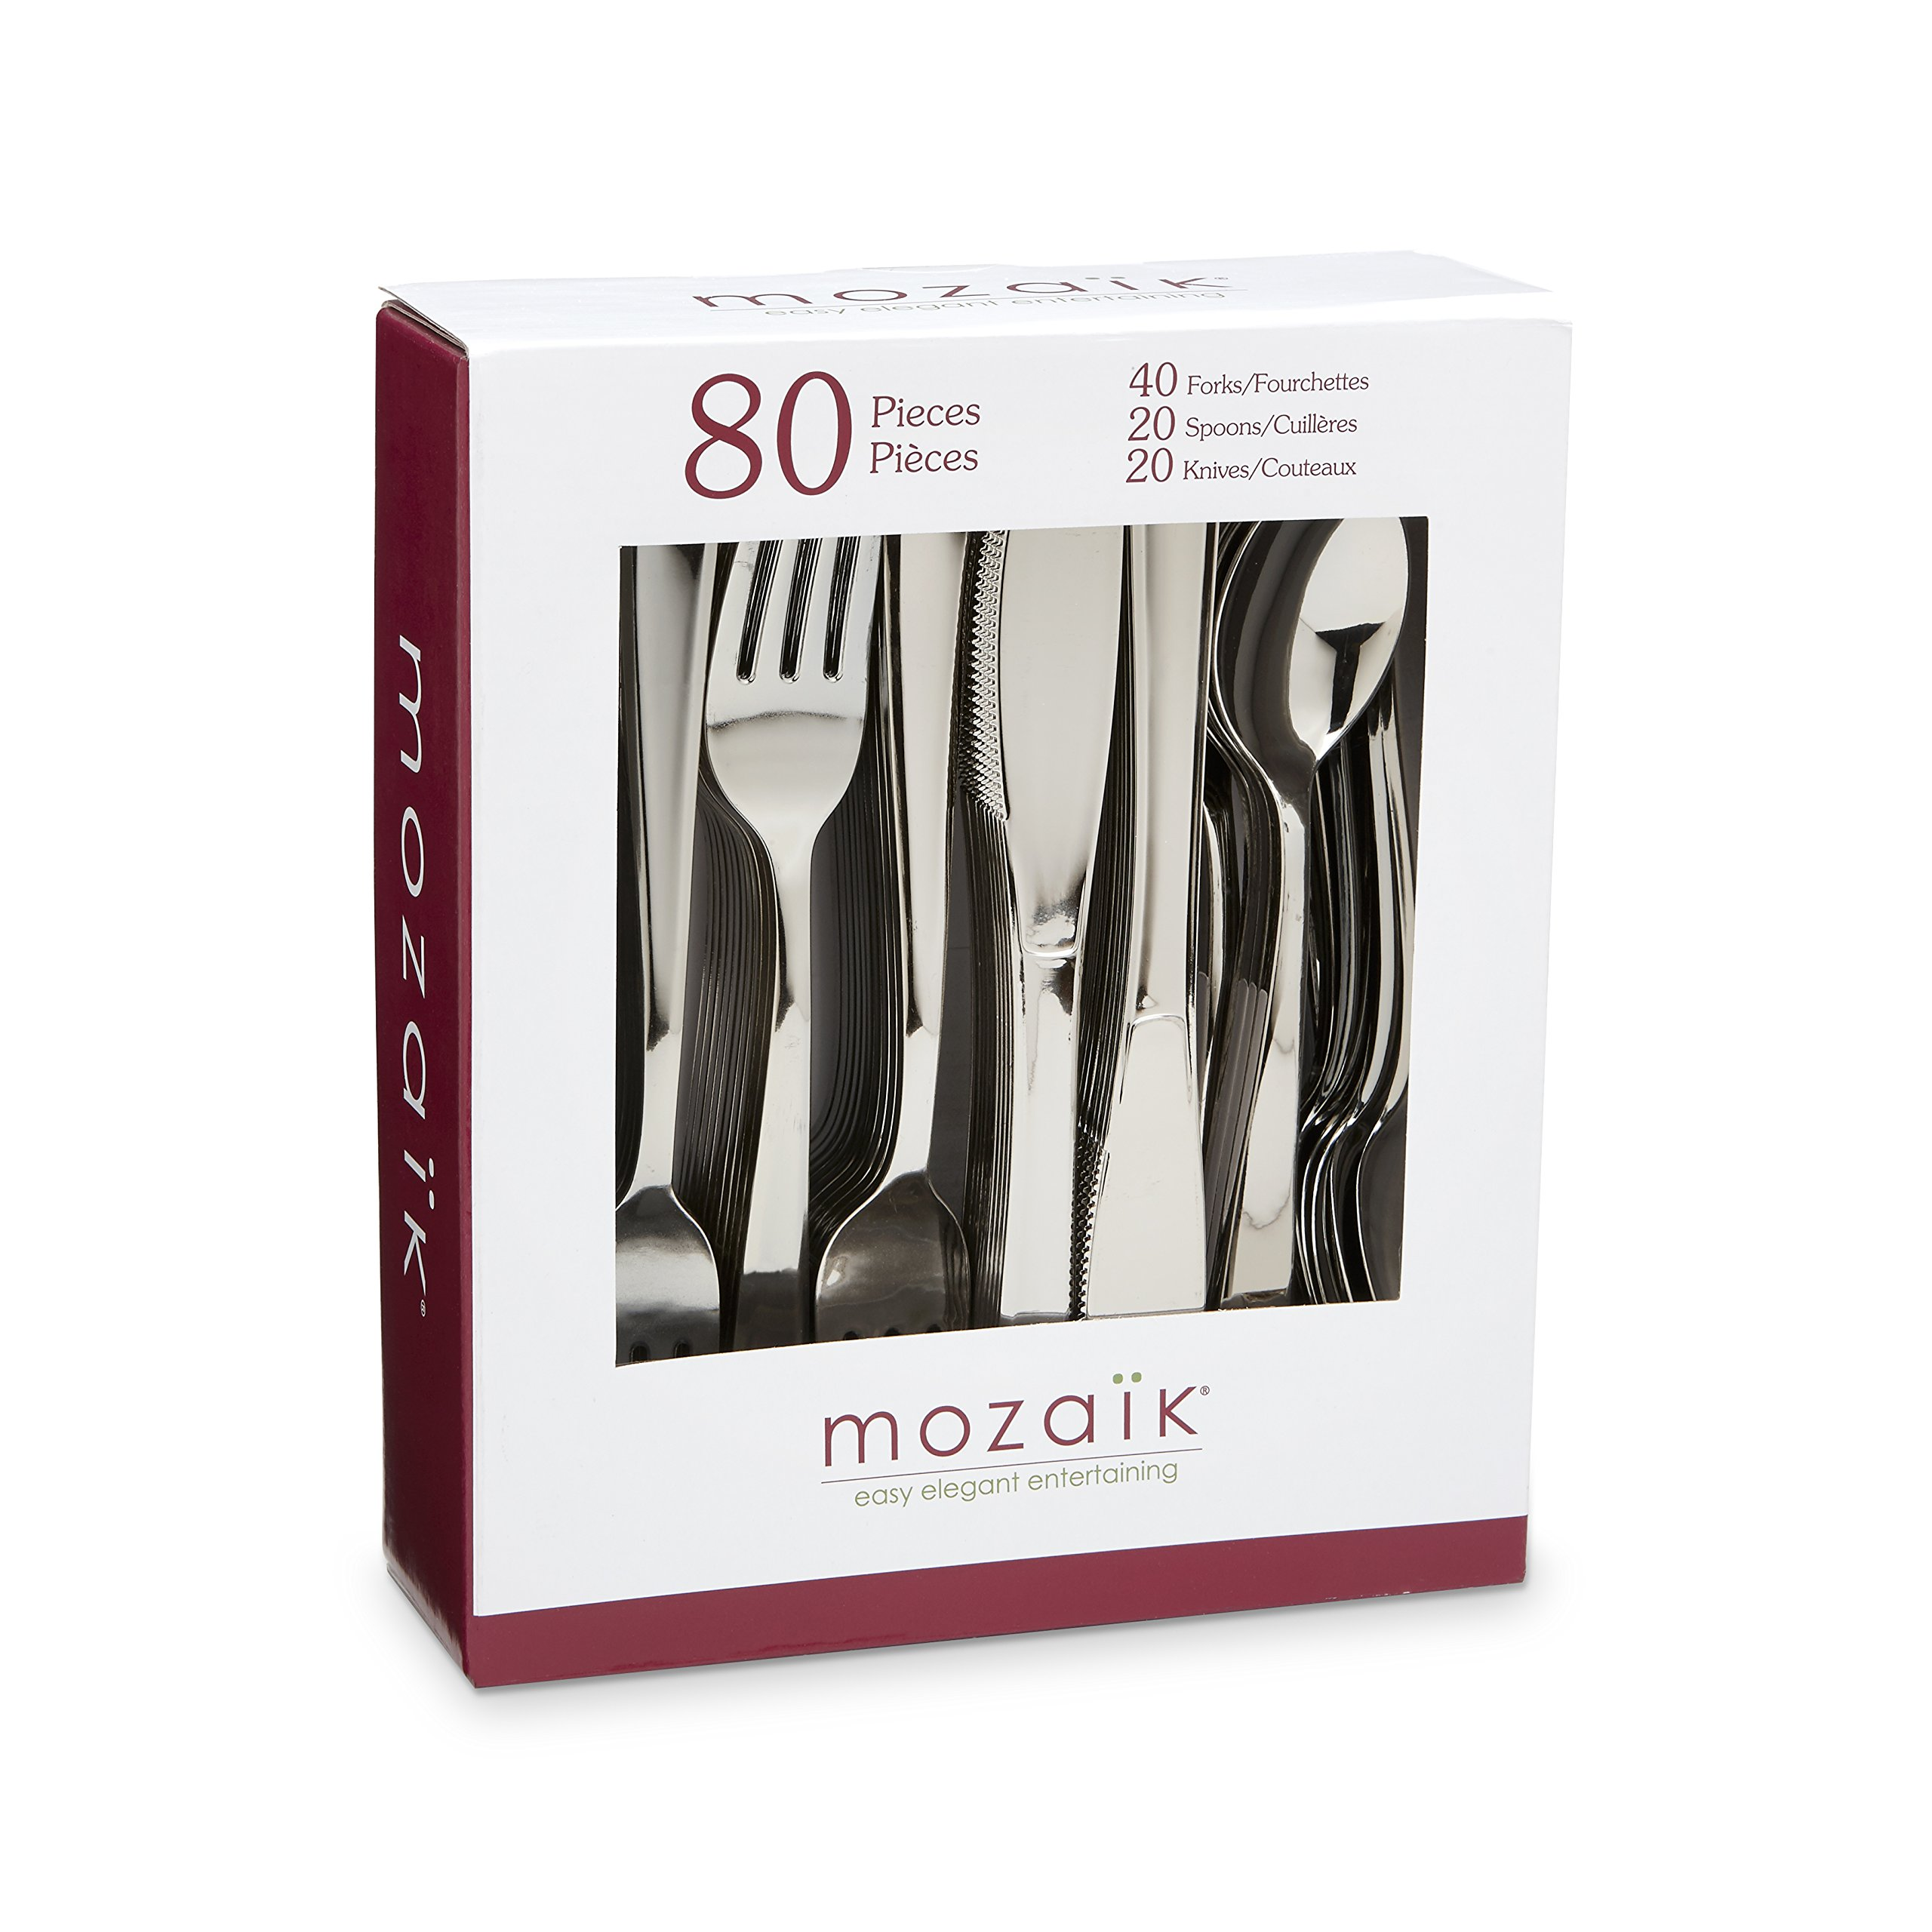 Mozaik Premium Plastic Classic Stainless Steel Coated Assorted Cutlery, 80 pieces